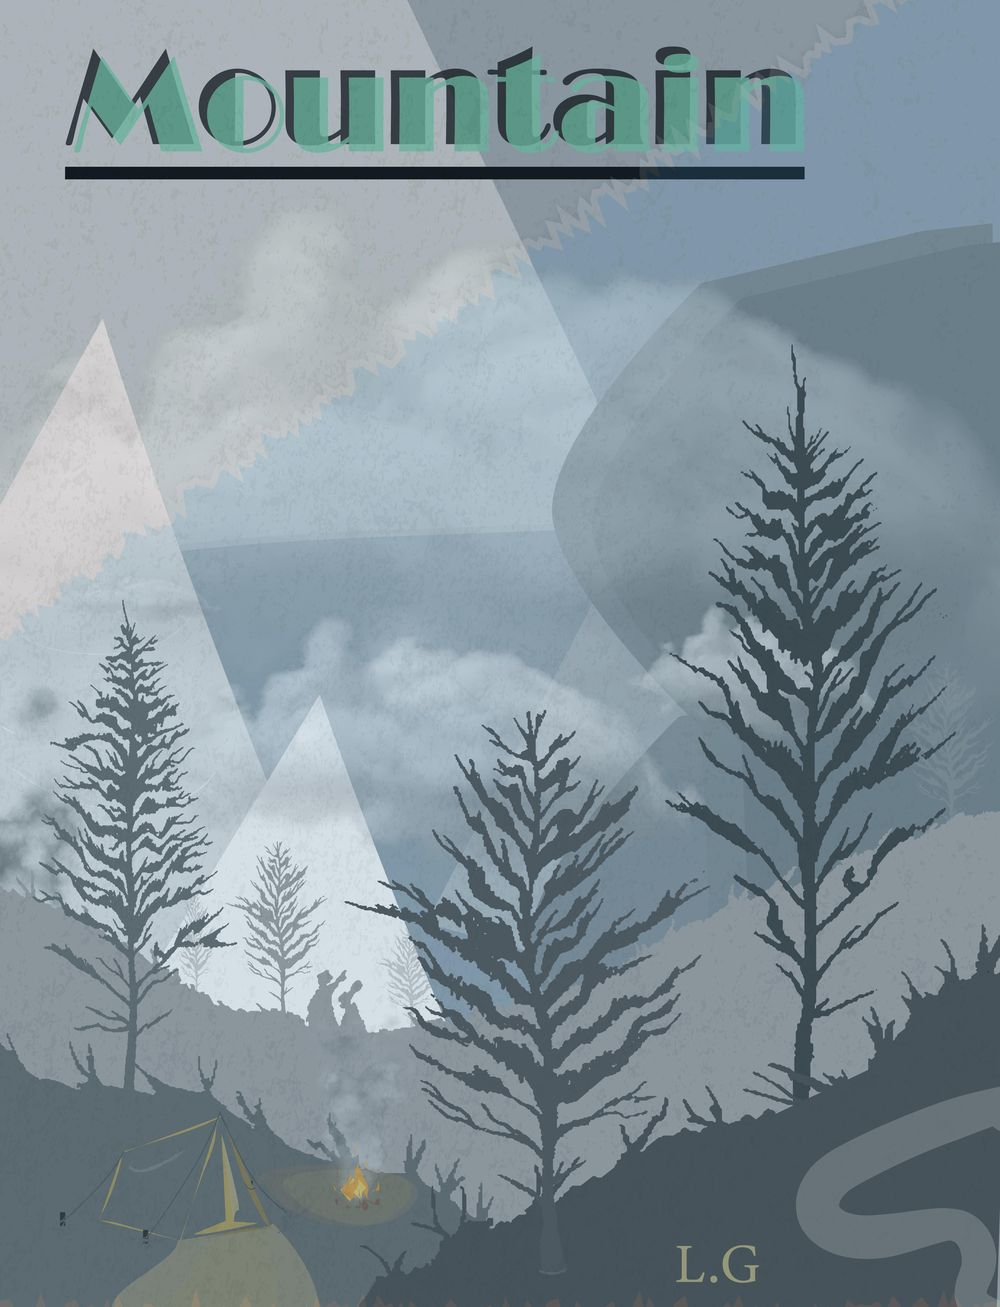 Mountain - image 2 - student project